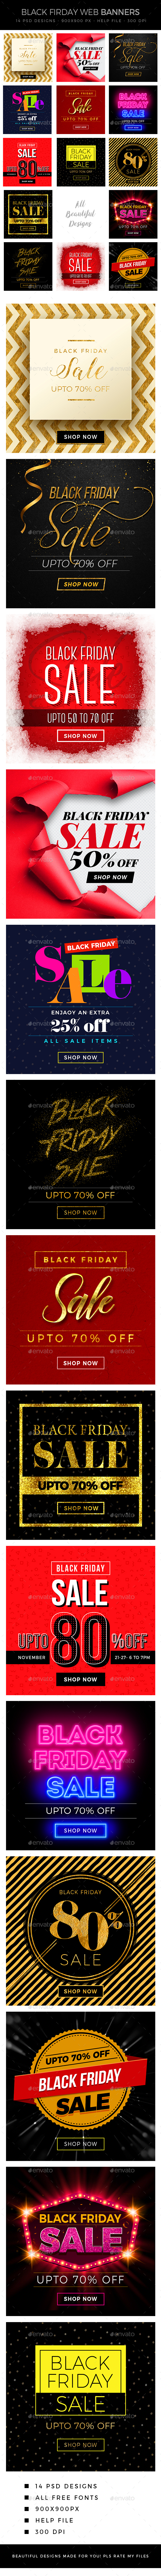 GraphicRiver Black Friday Banners 20897169